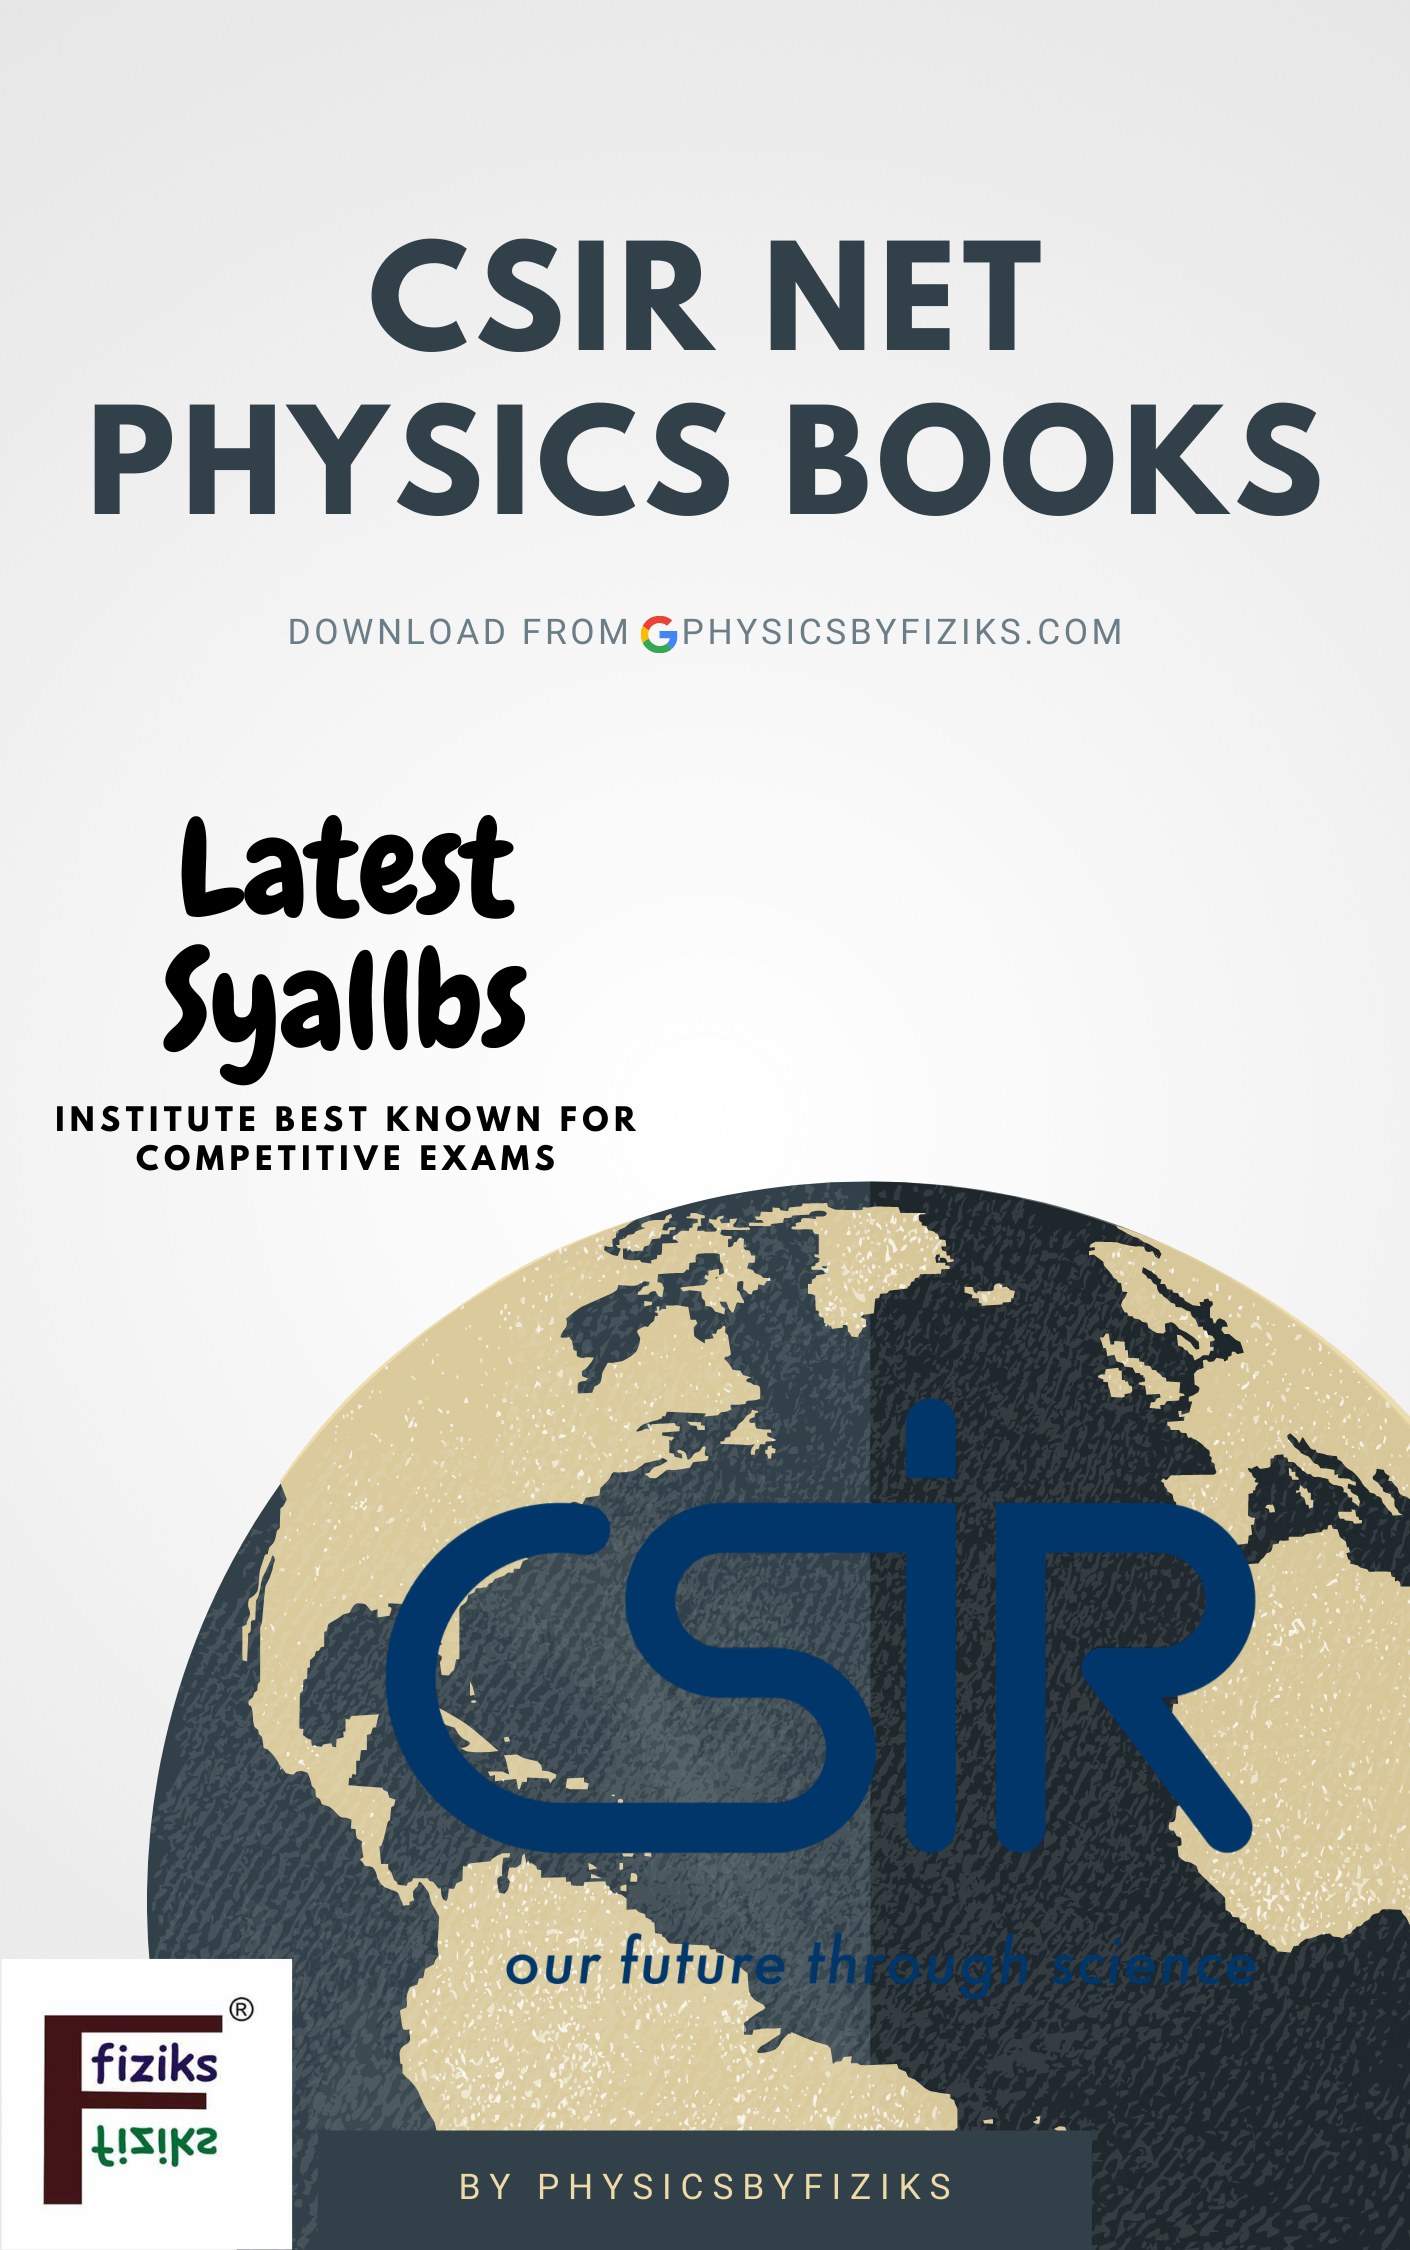 Advantages of Taking Csir Net Physics Mock Test